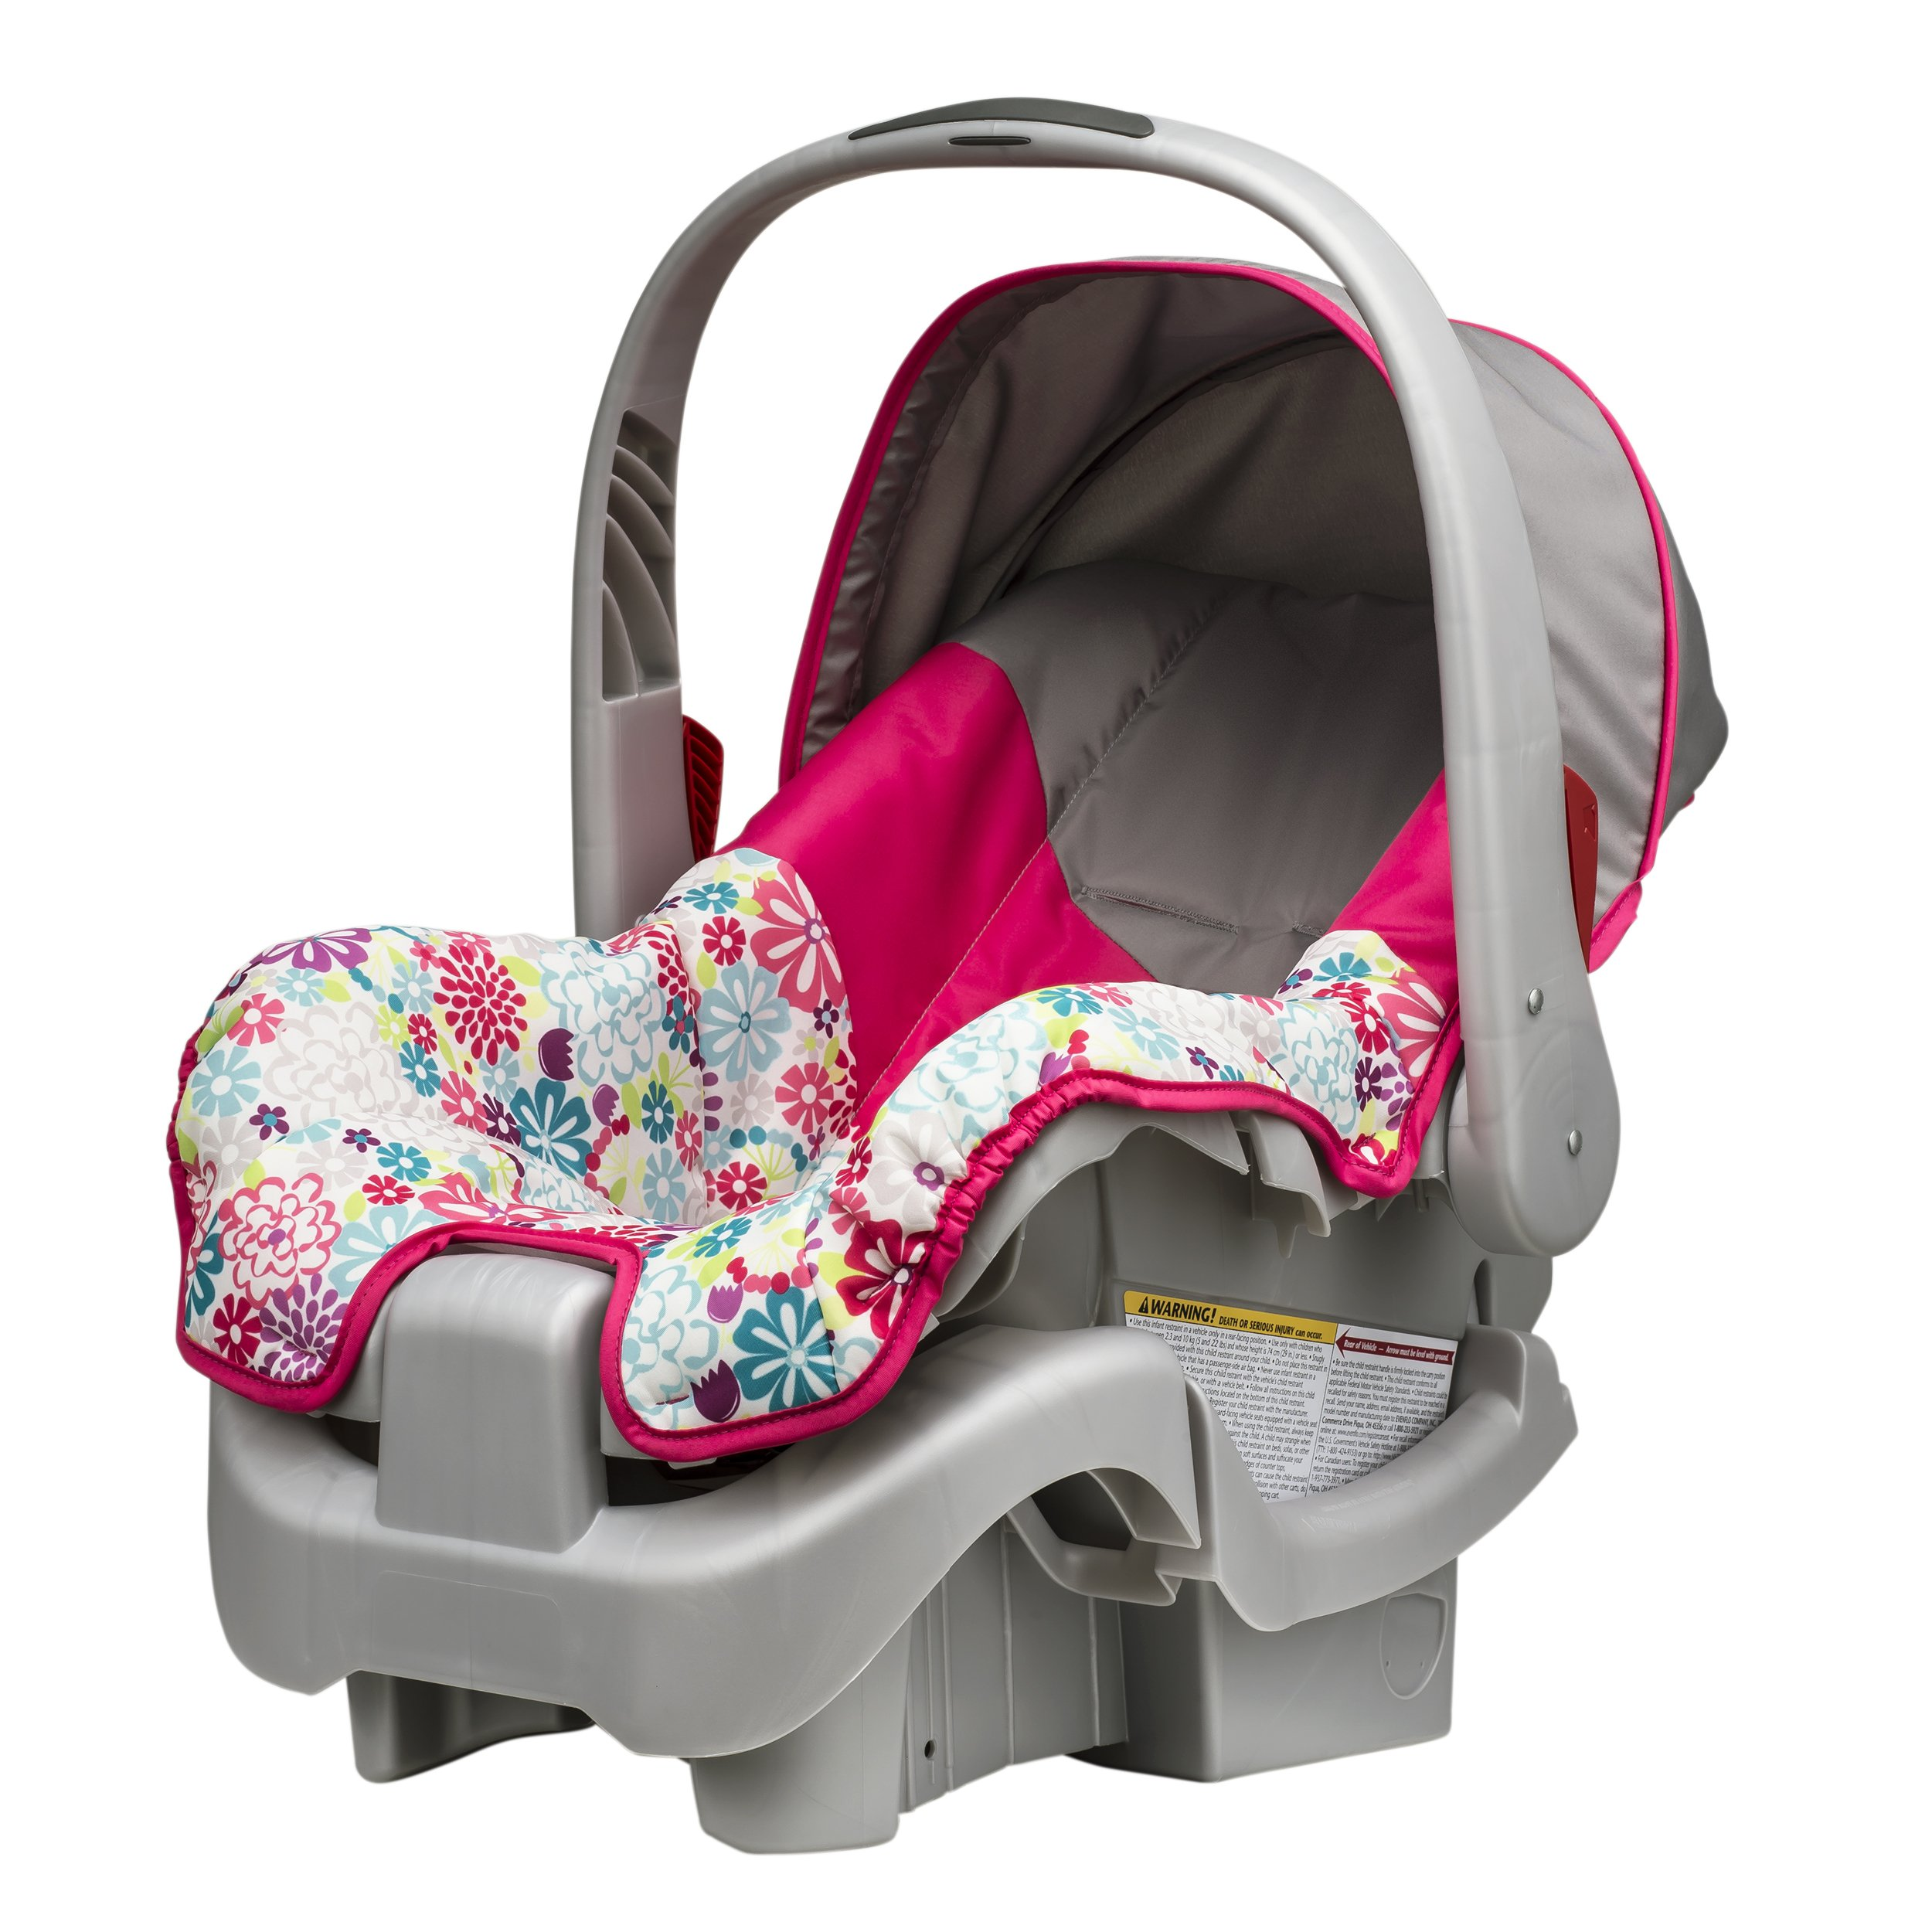 evenflo nurture infant car seat sabrina amazon. Black Bedroom Furniture Sets. Home Design Ideas